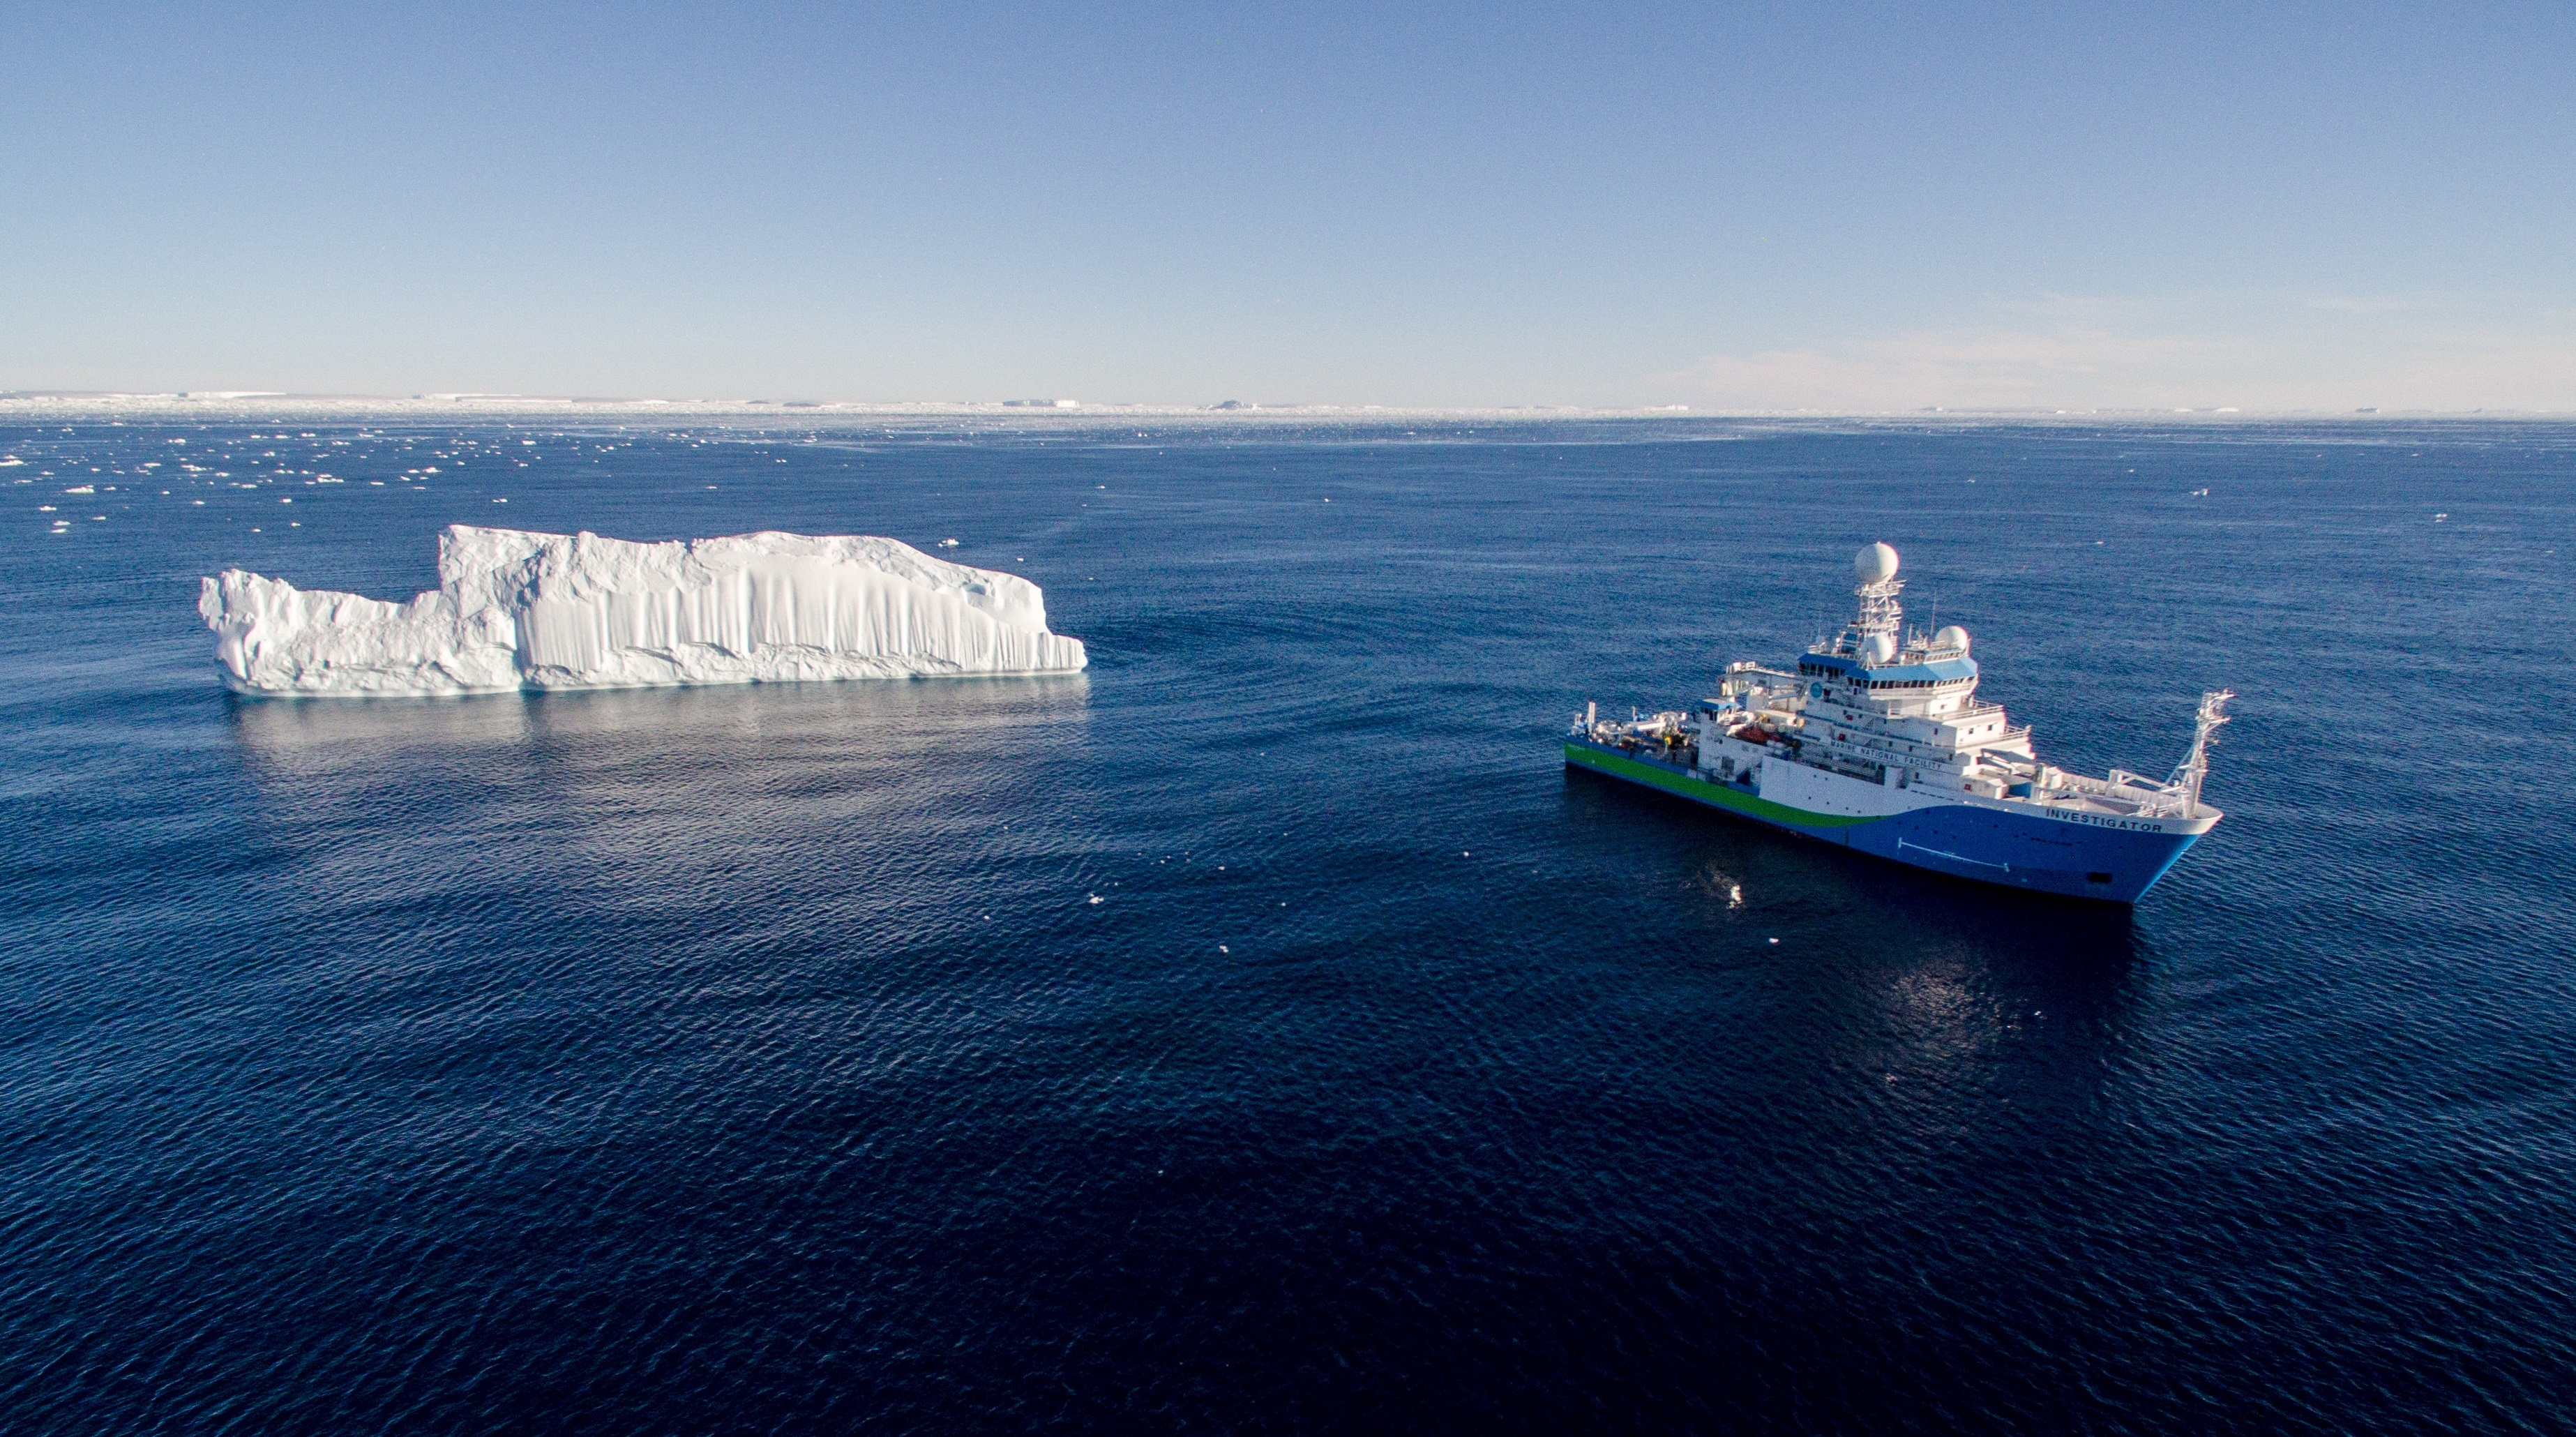 The RV Investigator in Antarctica during a research voyage. Photo by CSIRO Marine National Facility.